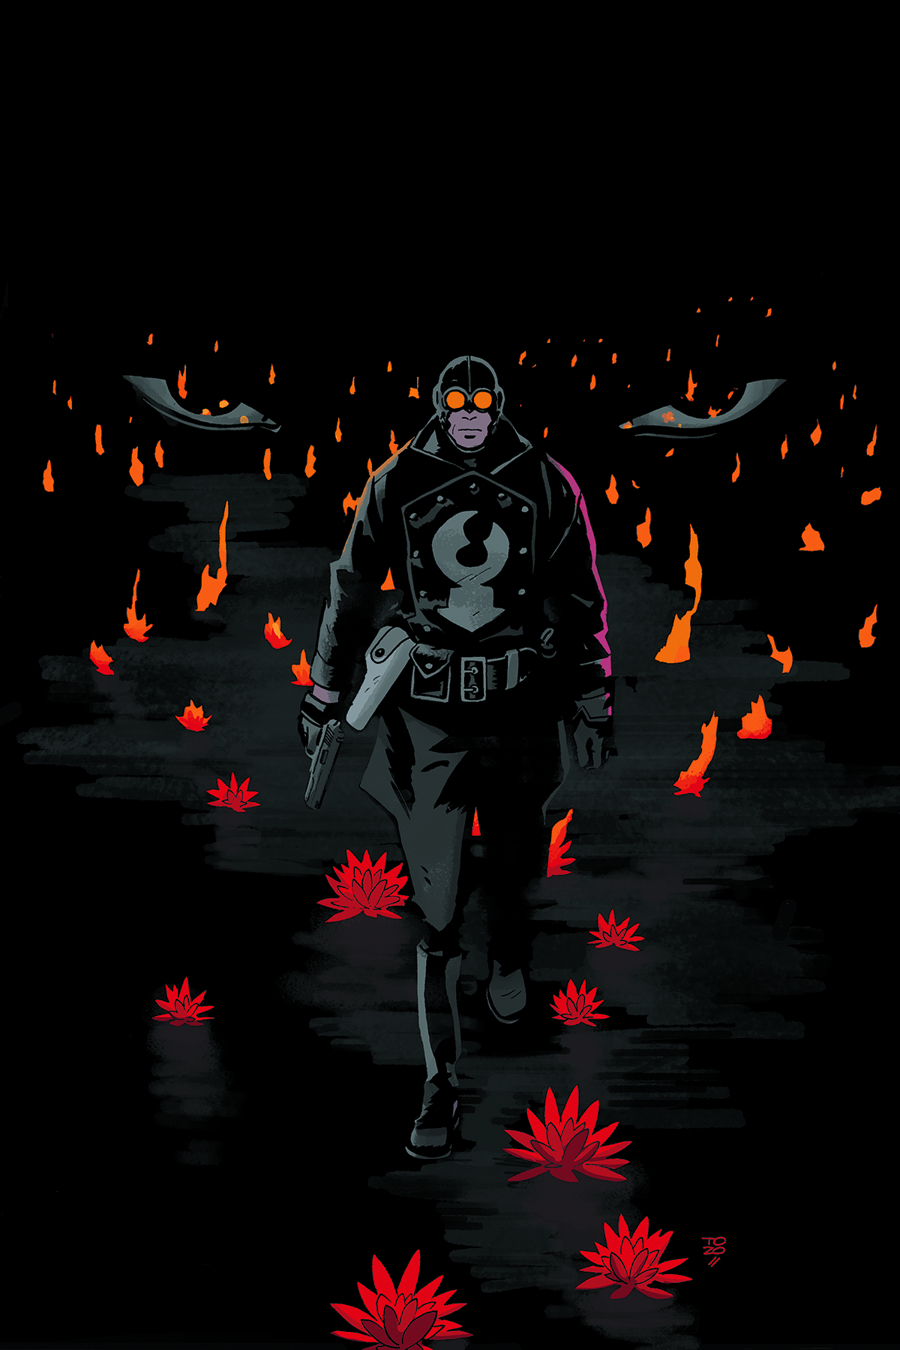 LOBSTER JOHNSON SCENT OF LOTUS #2